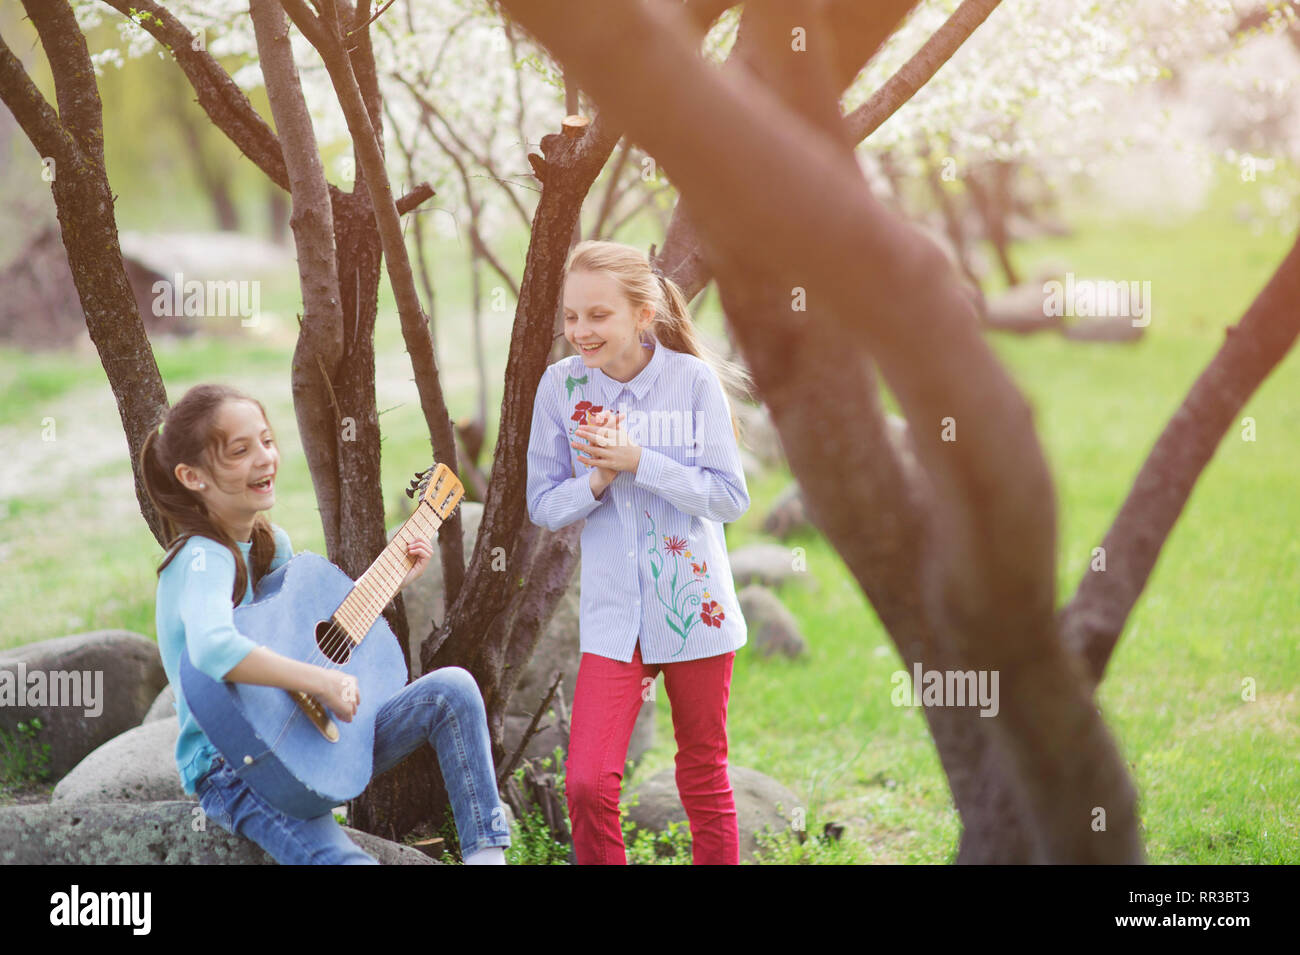 two happy caucasian laughing little girls playing guitar and applauding in spring outdoor park - Stock Image